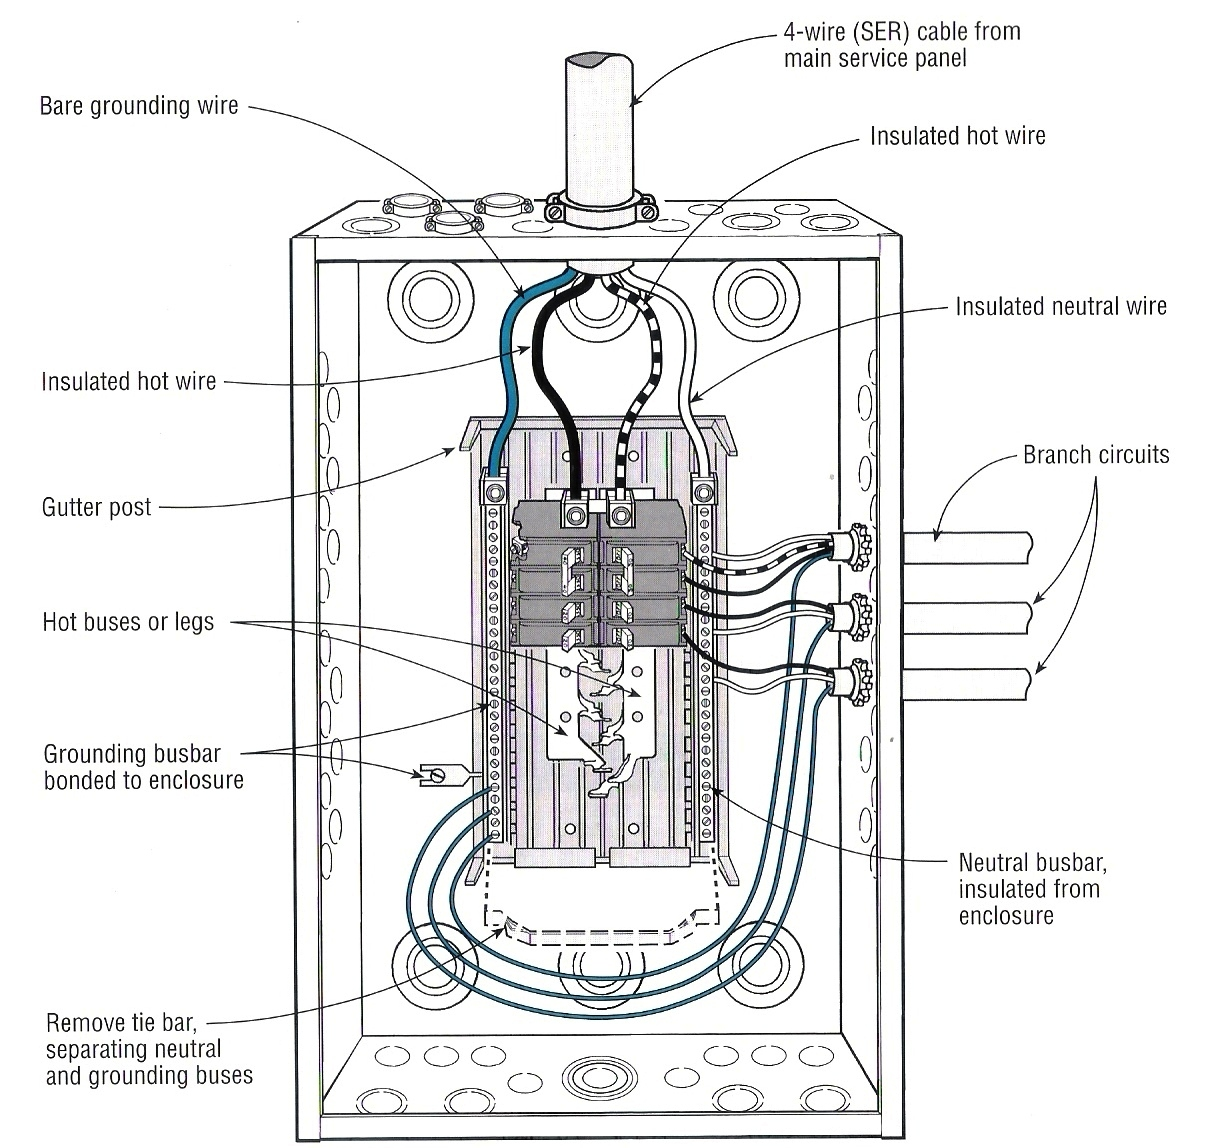 wiring diagram meter box wiring discover your wiring diagram electric service panel wiring diagram